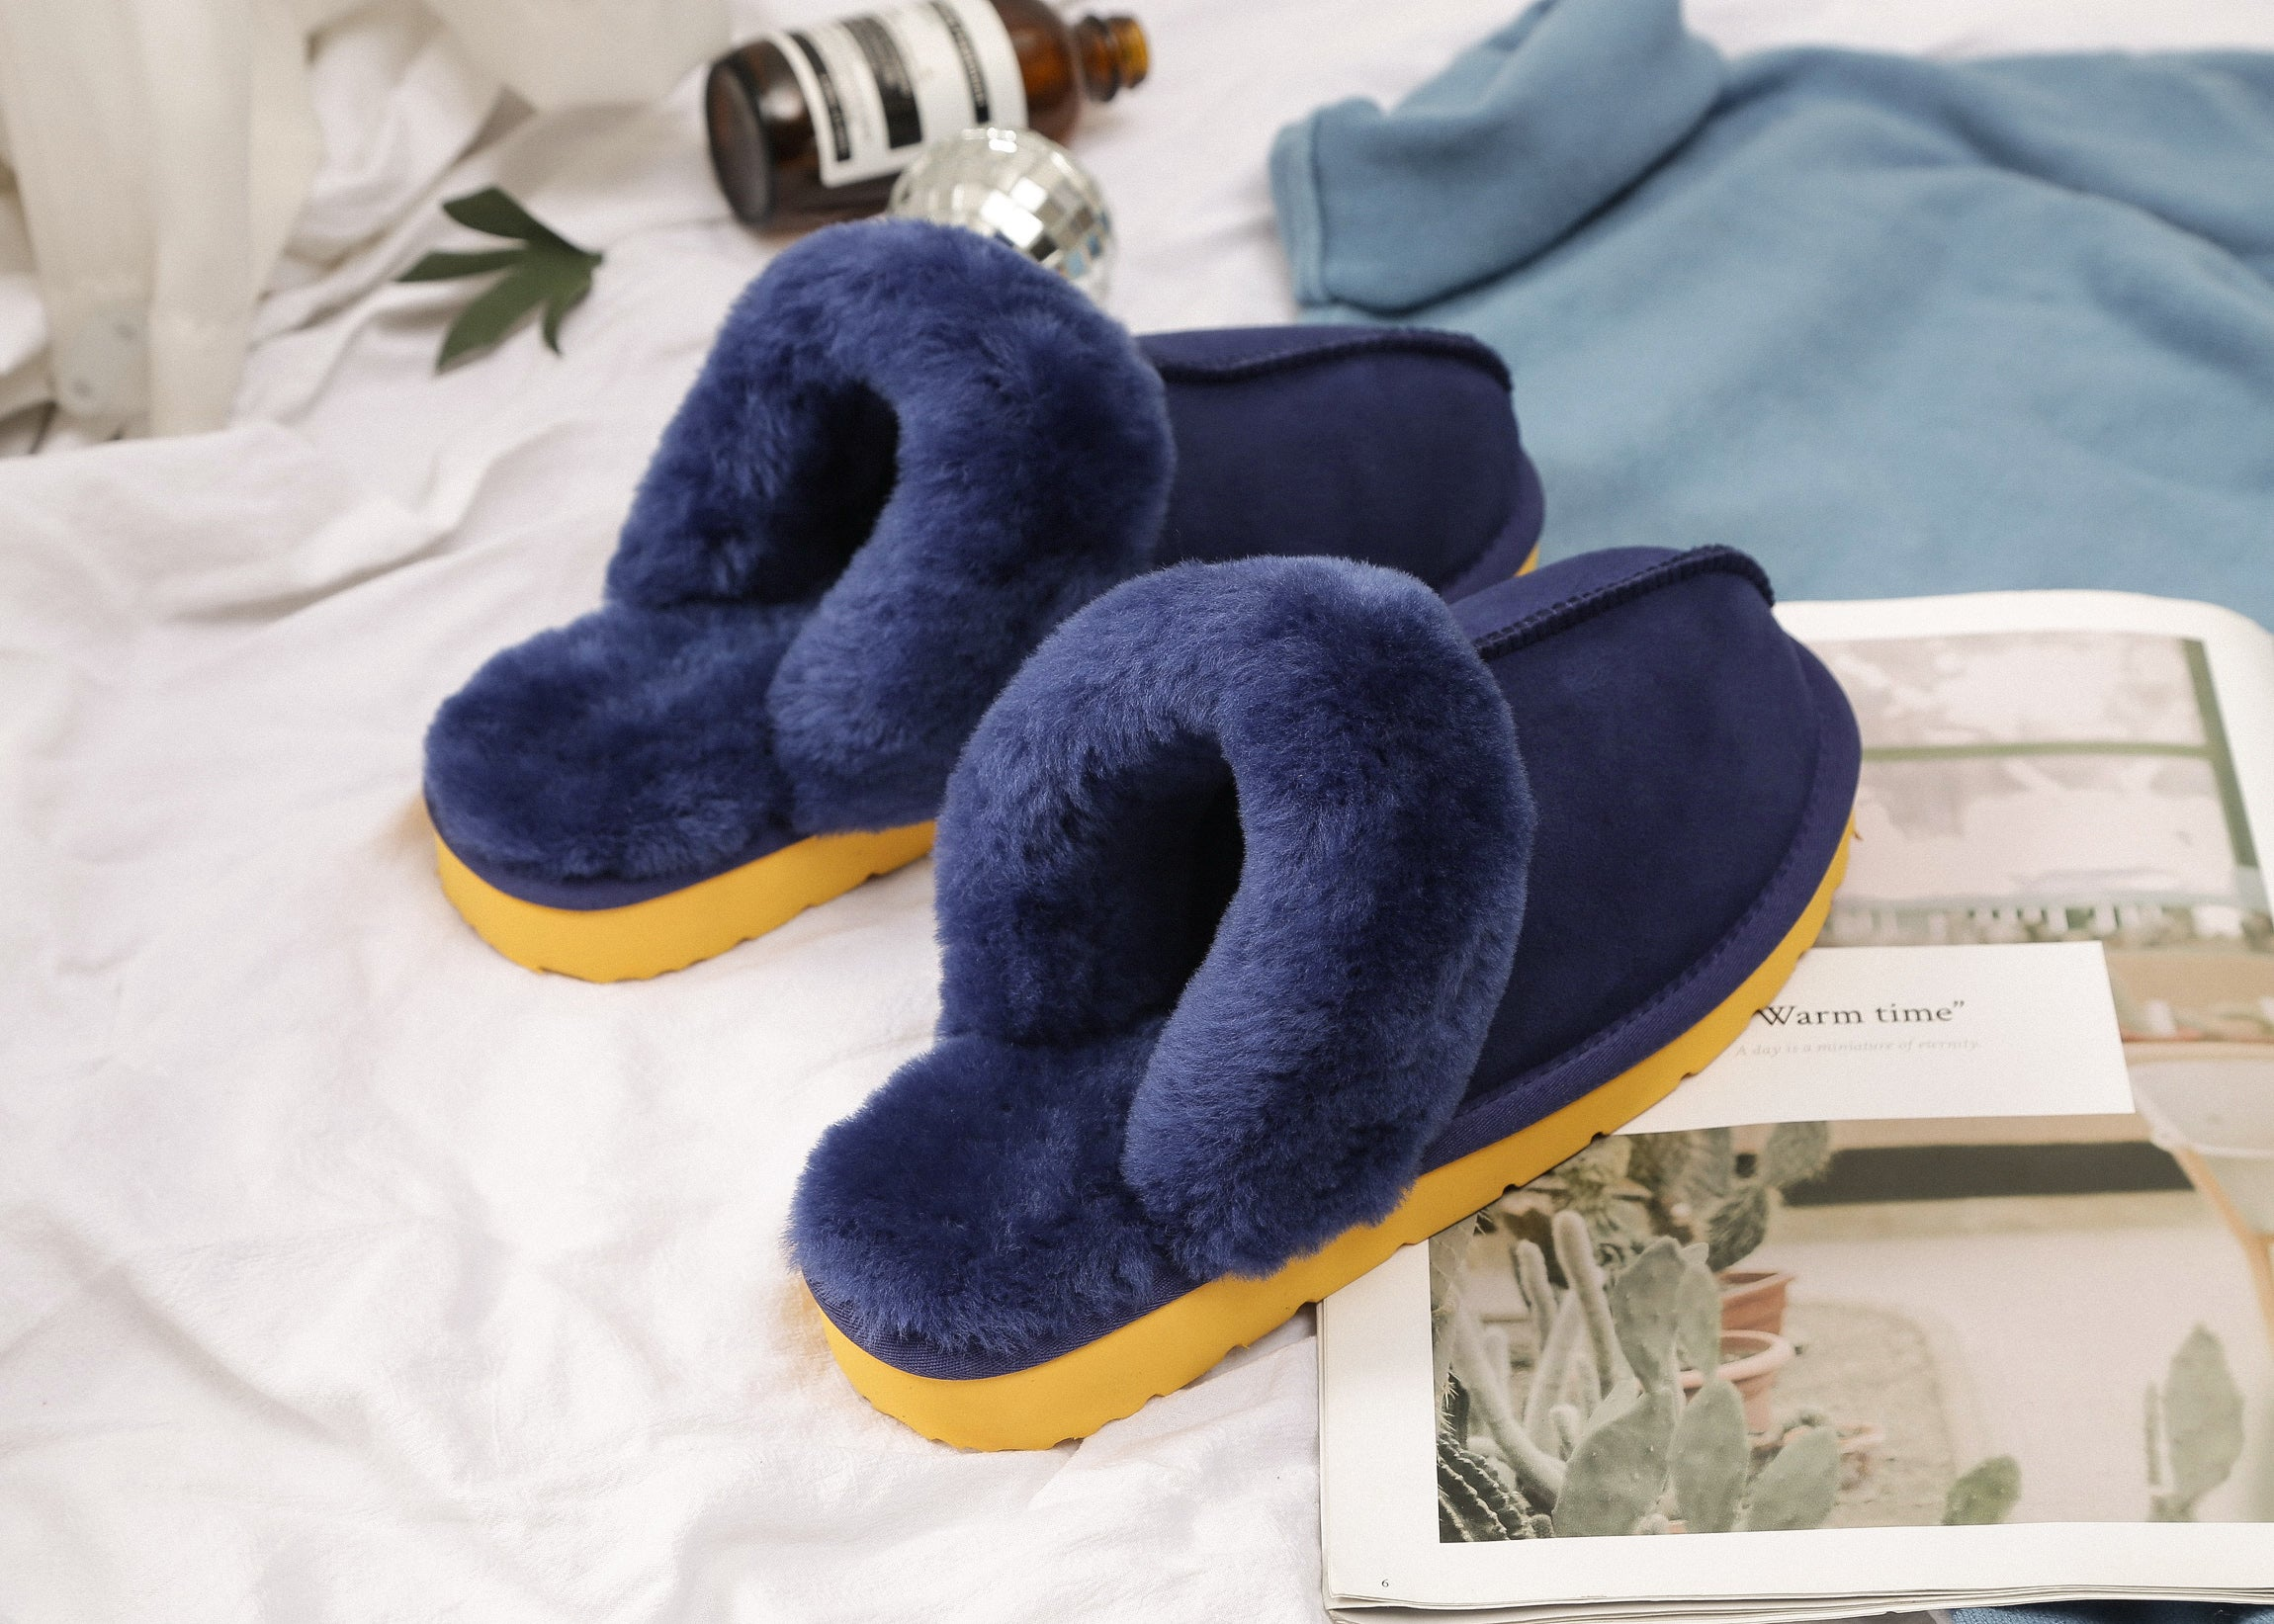 cancer council slippers